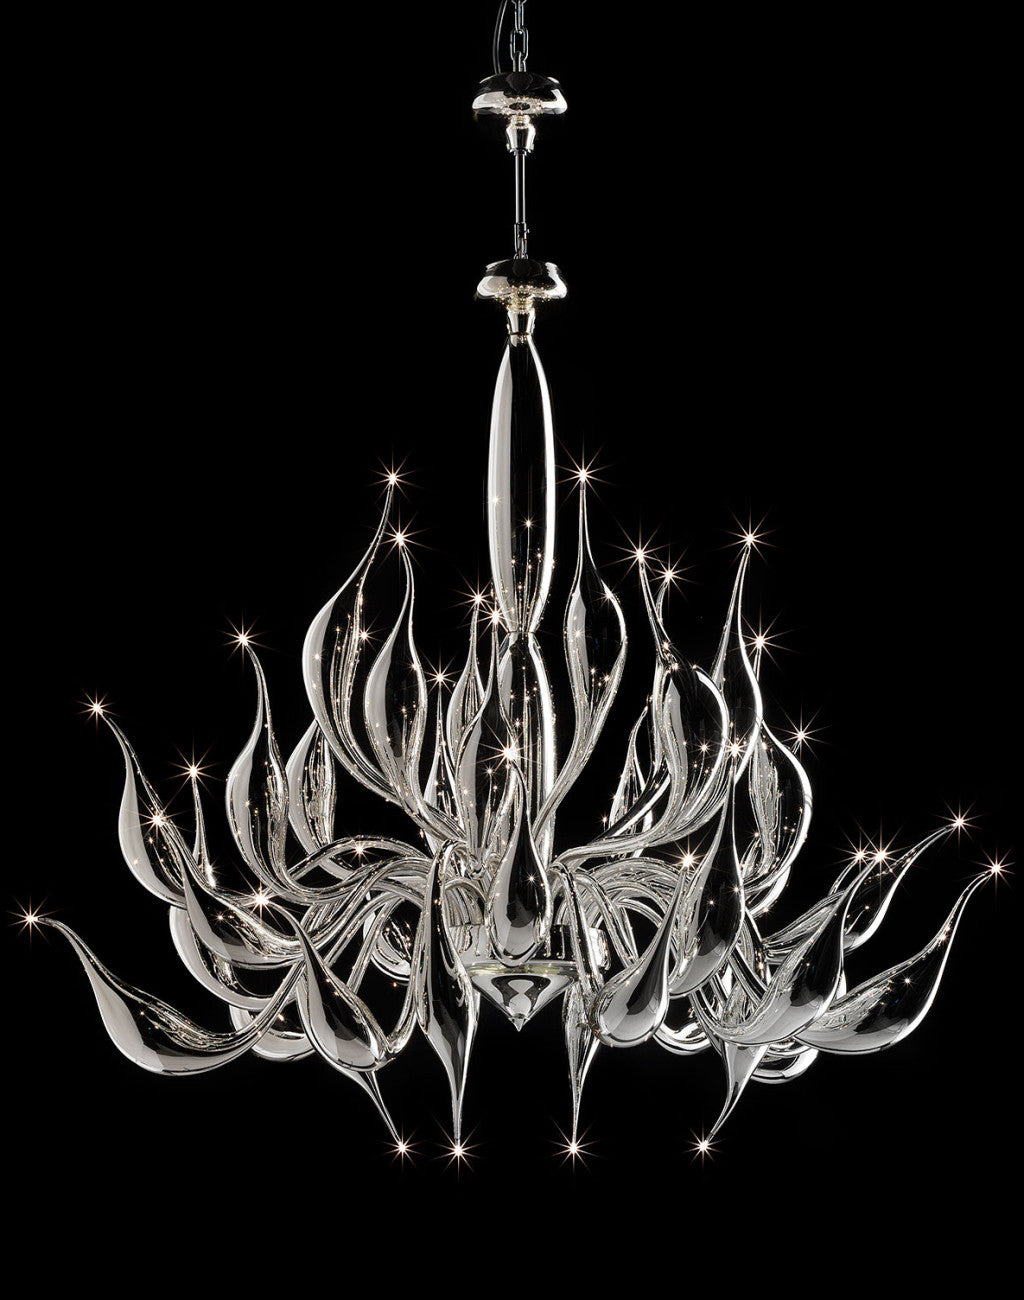 Glorious 24 light Venetian art glass chandelier with silver mirrored glass finish